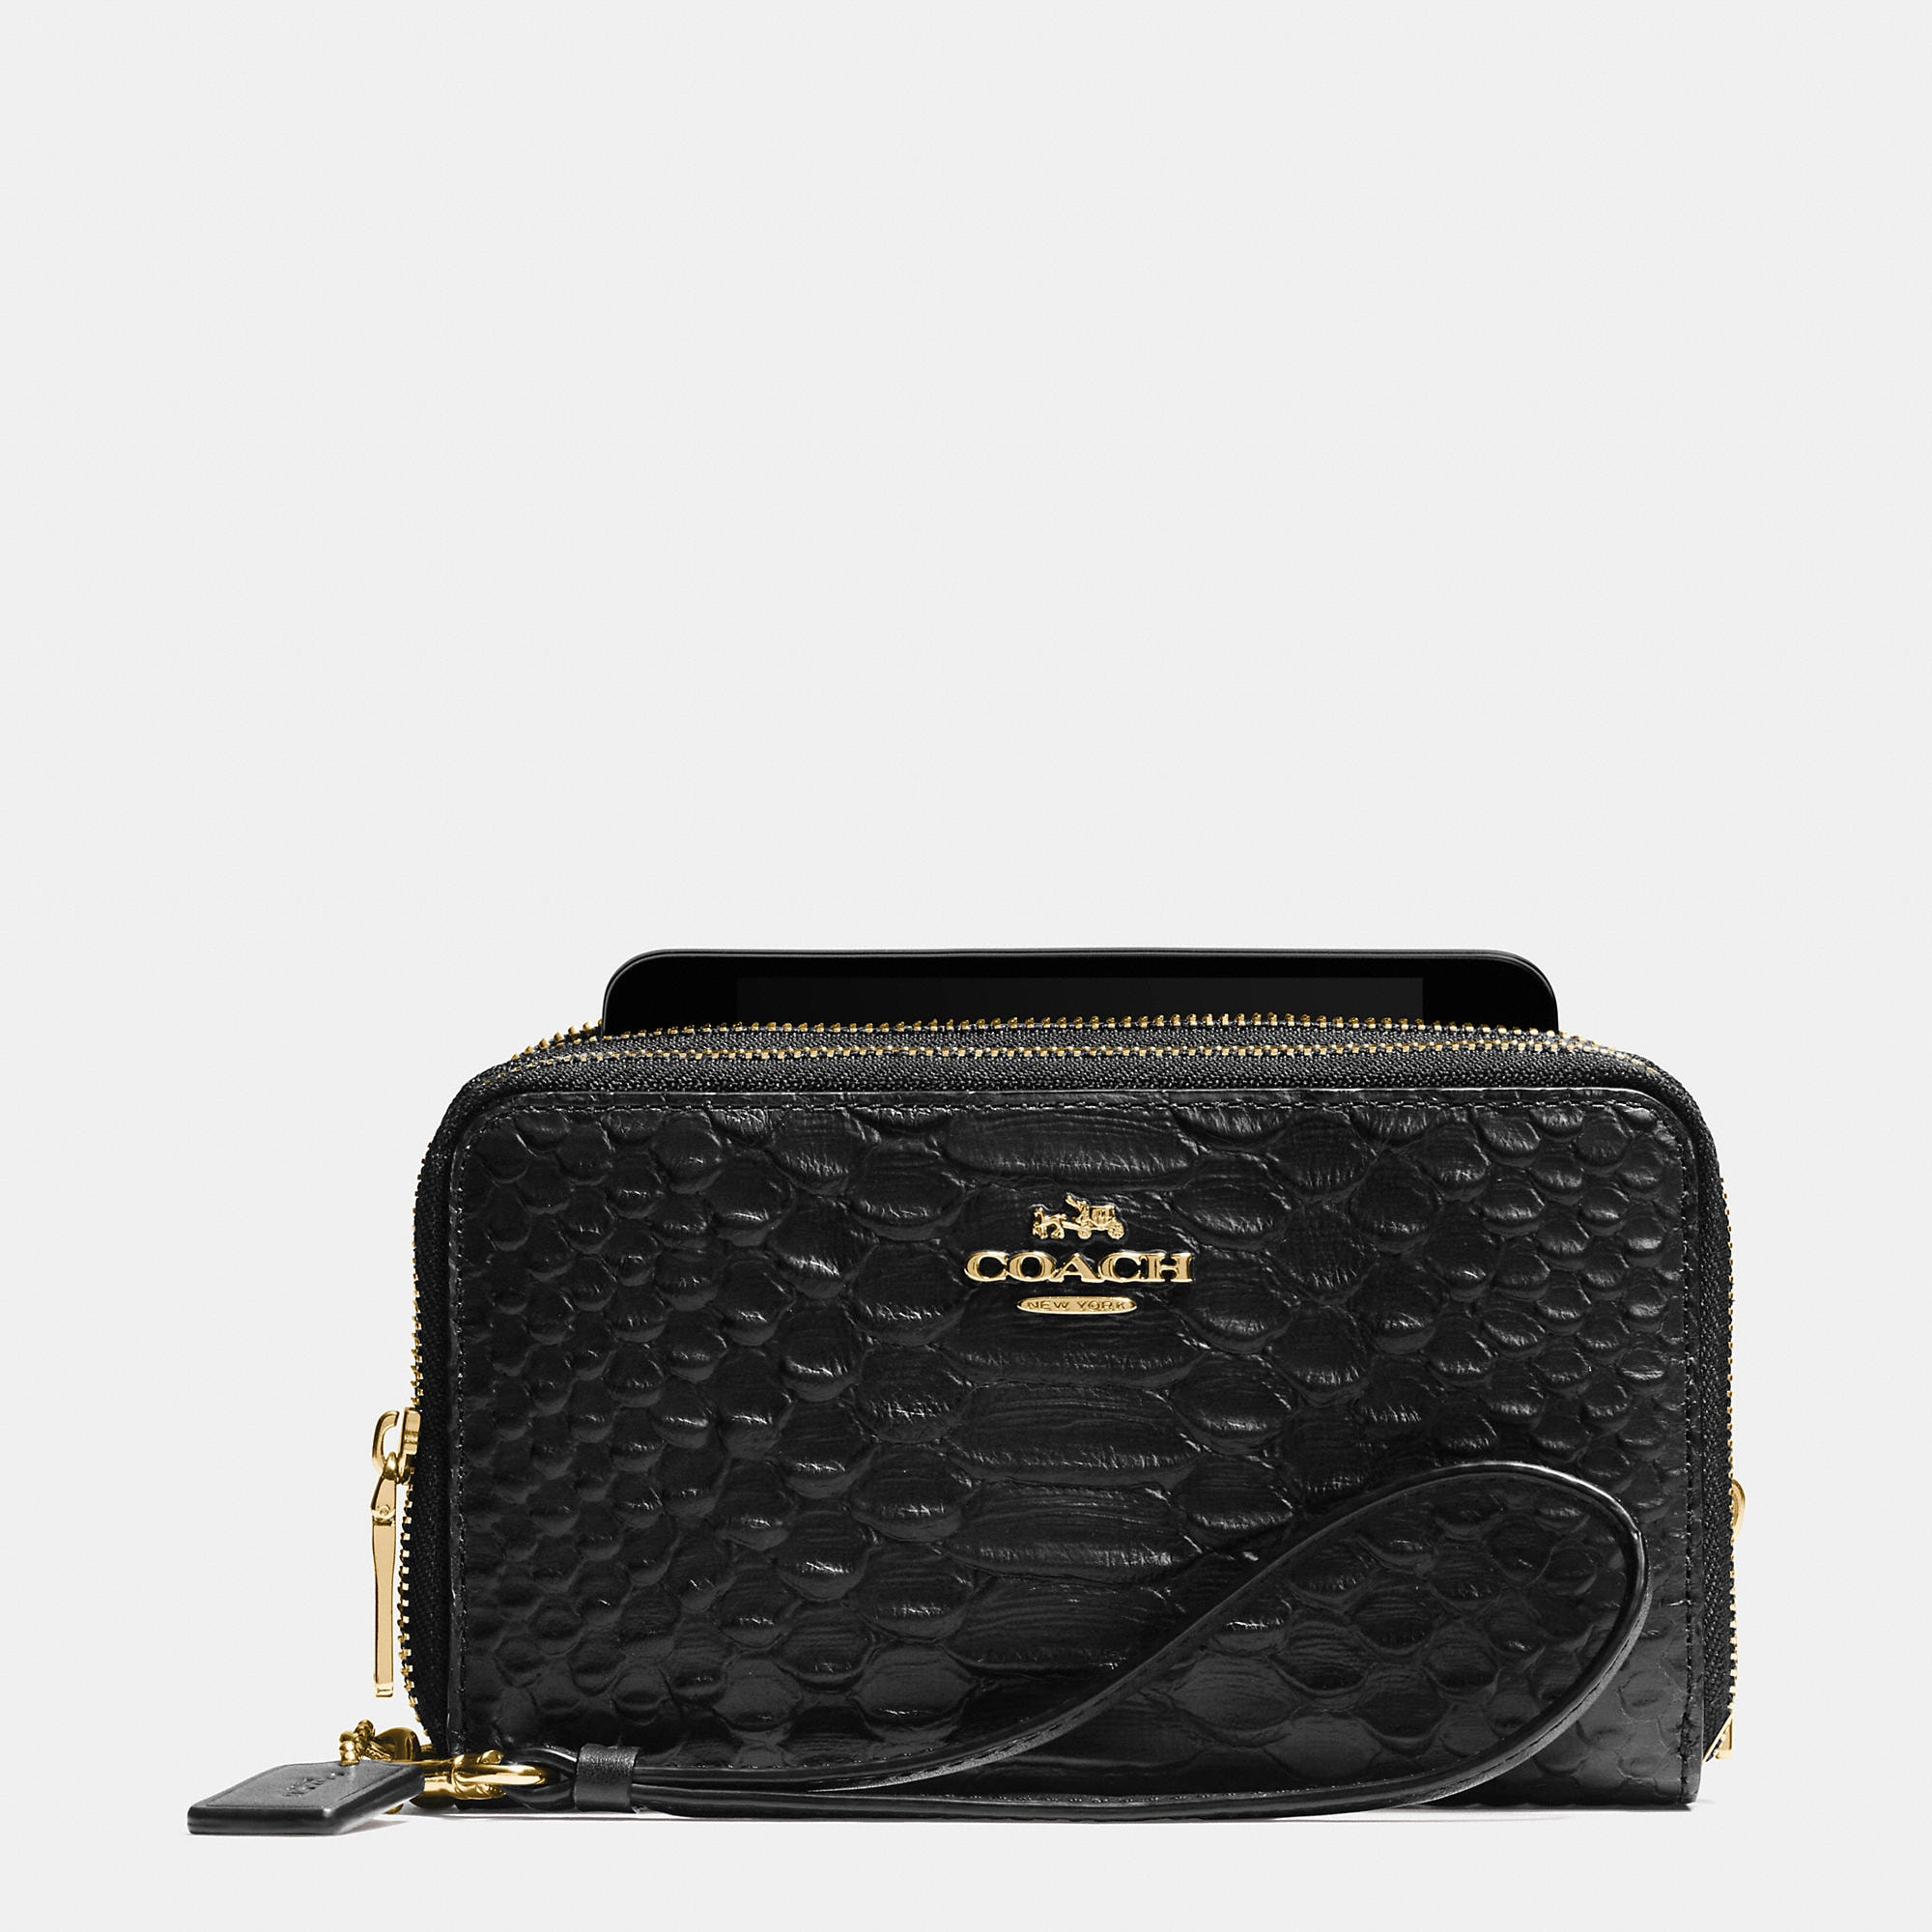 Coach Double Zip Phone Wallet In Snake Embossed Leather